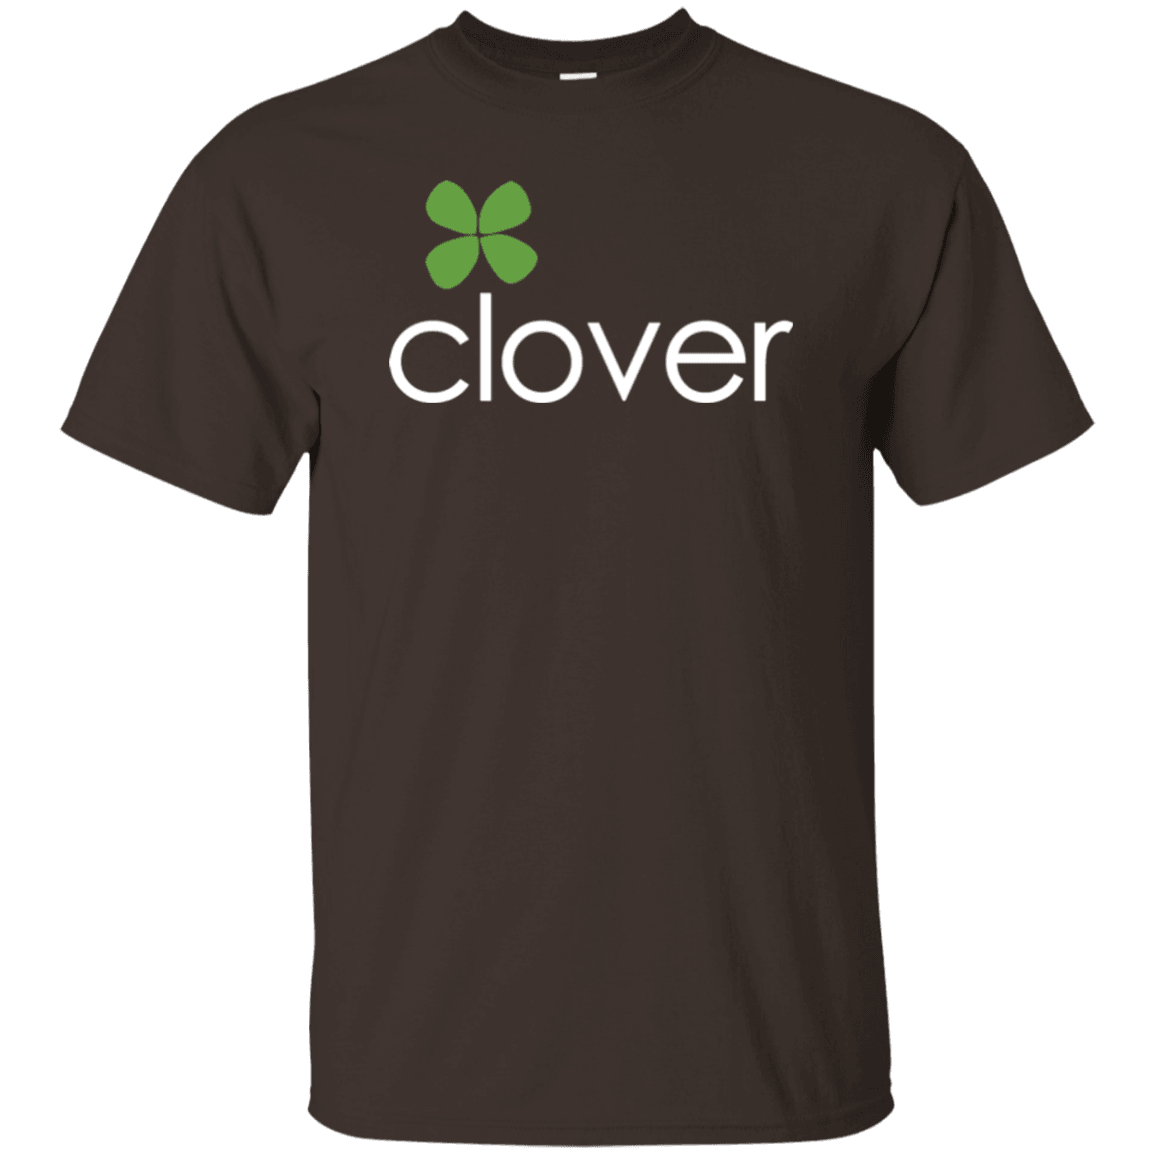 Cyber Special Clover Department Store T-Shirt